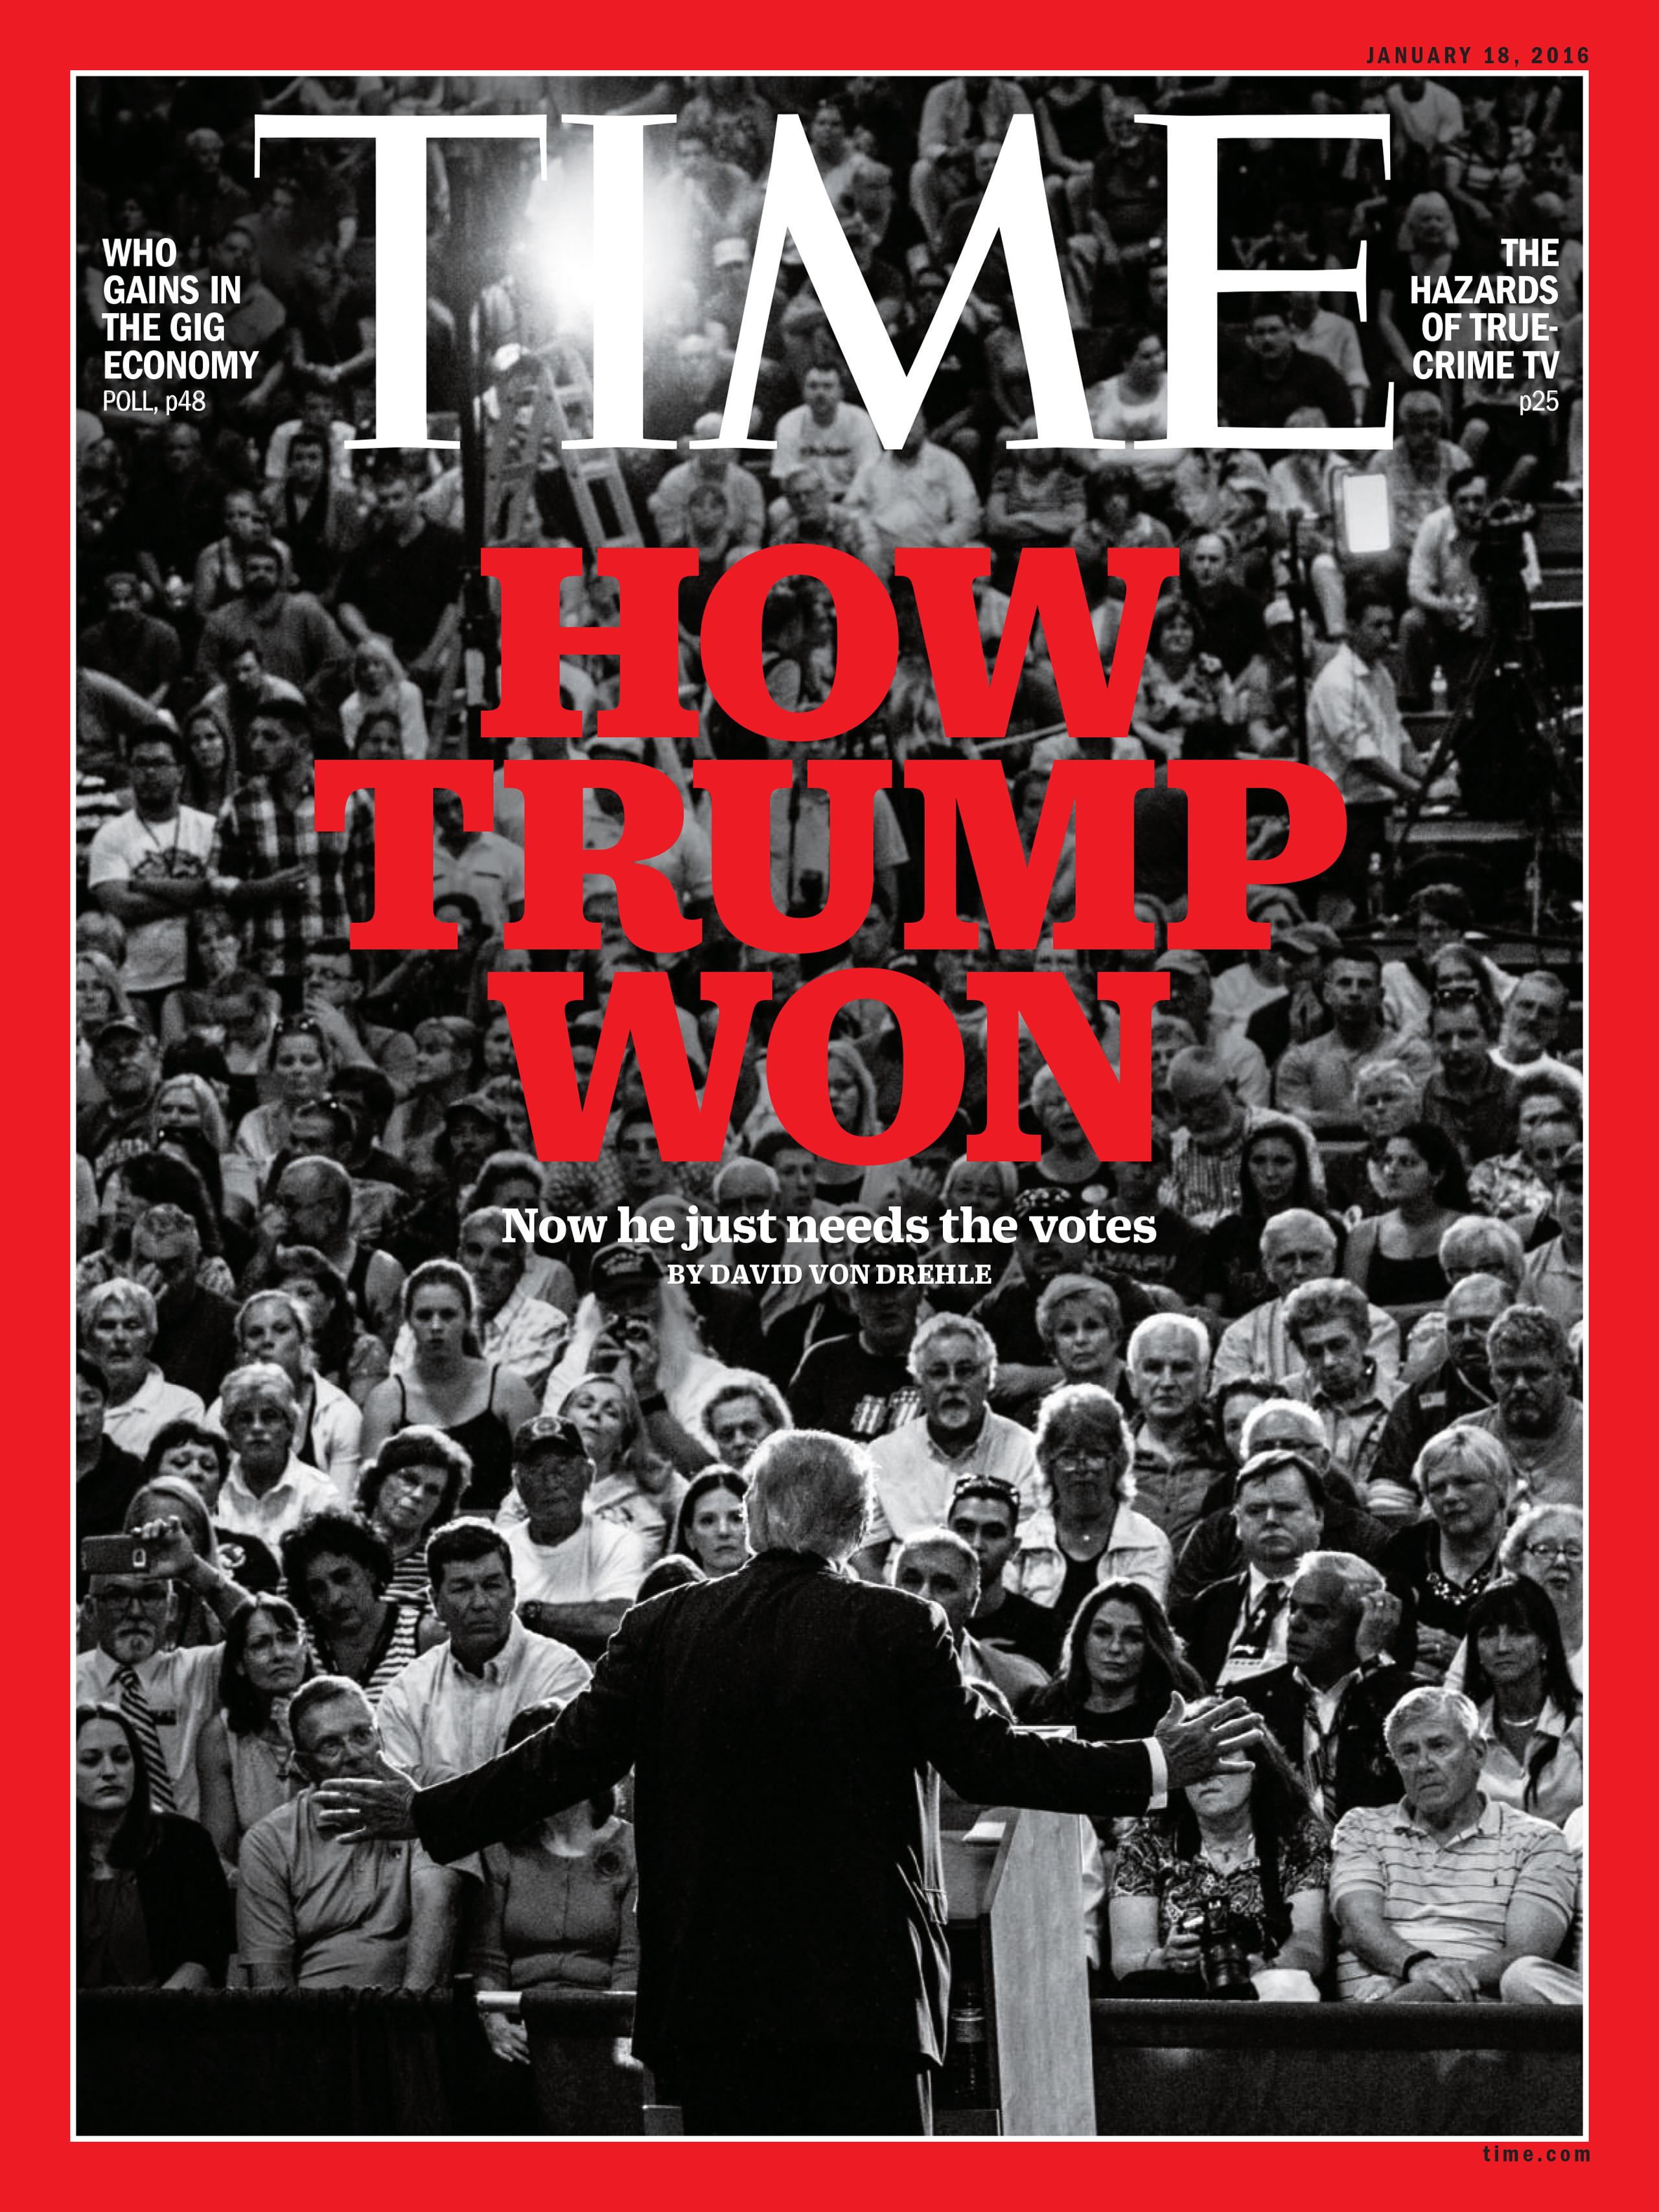 The Jan. 18, 2016 issue of TIME.